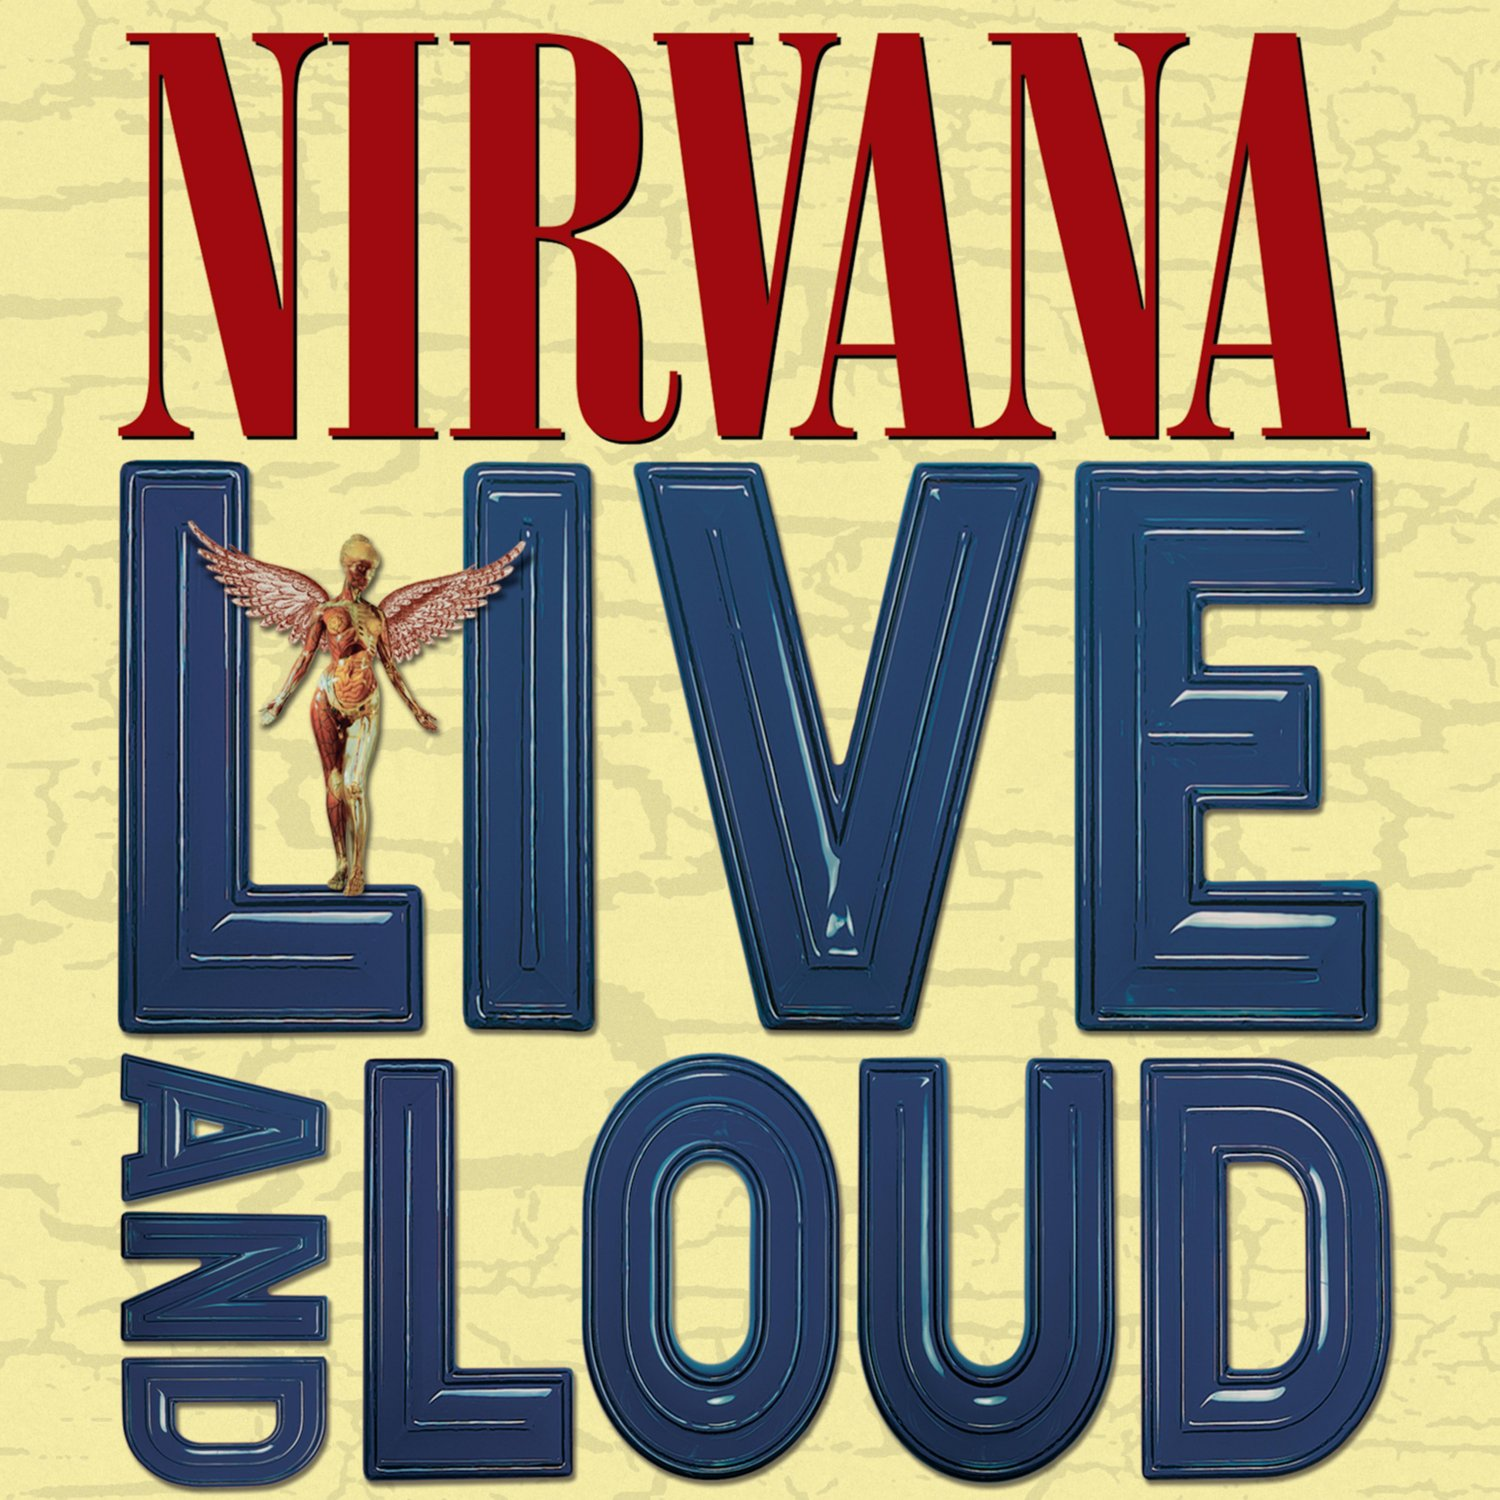 NIRVANA Live and Loud BANNER Huge 4X4 Ft Fabric Poster Tapestry Flag Print album cover art